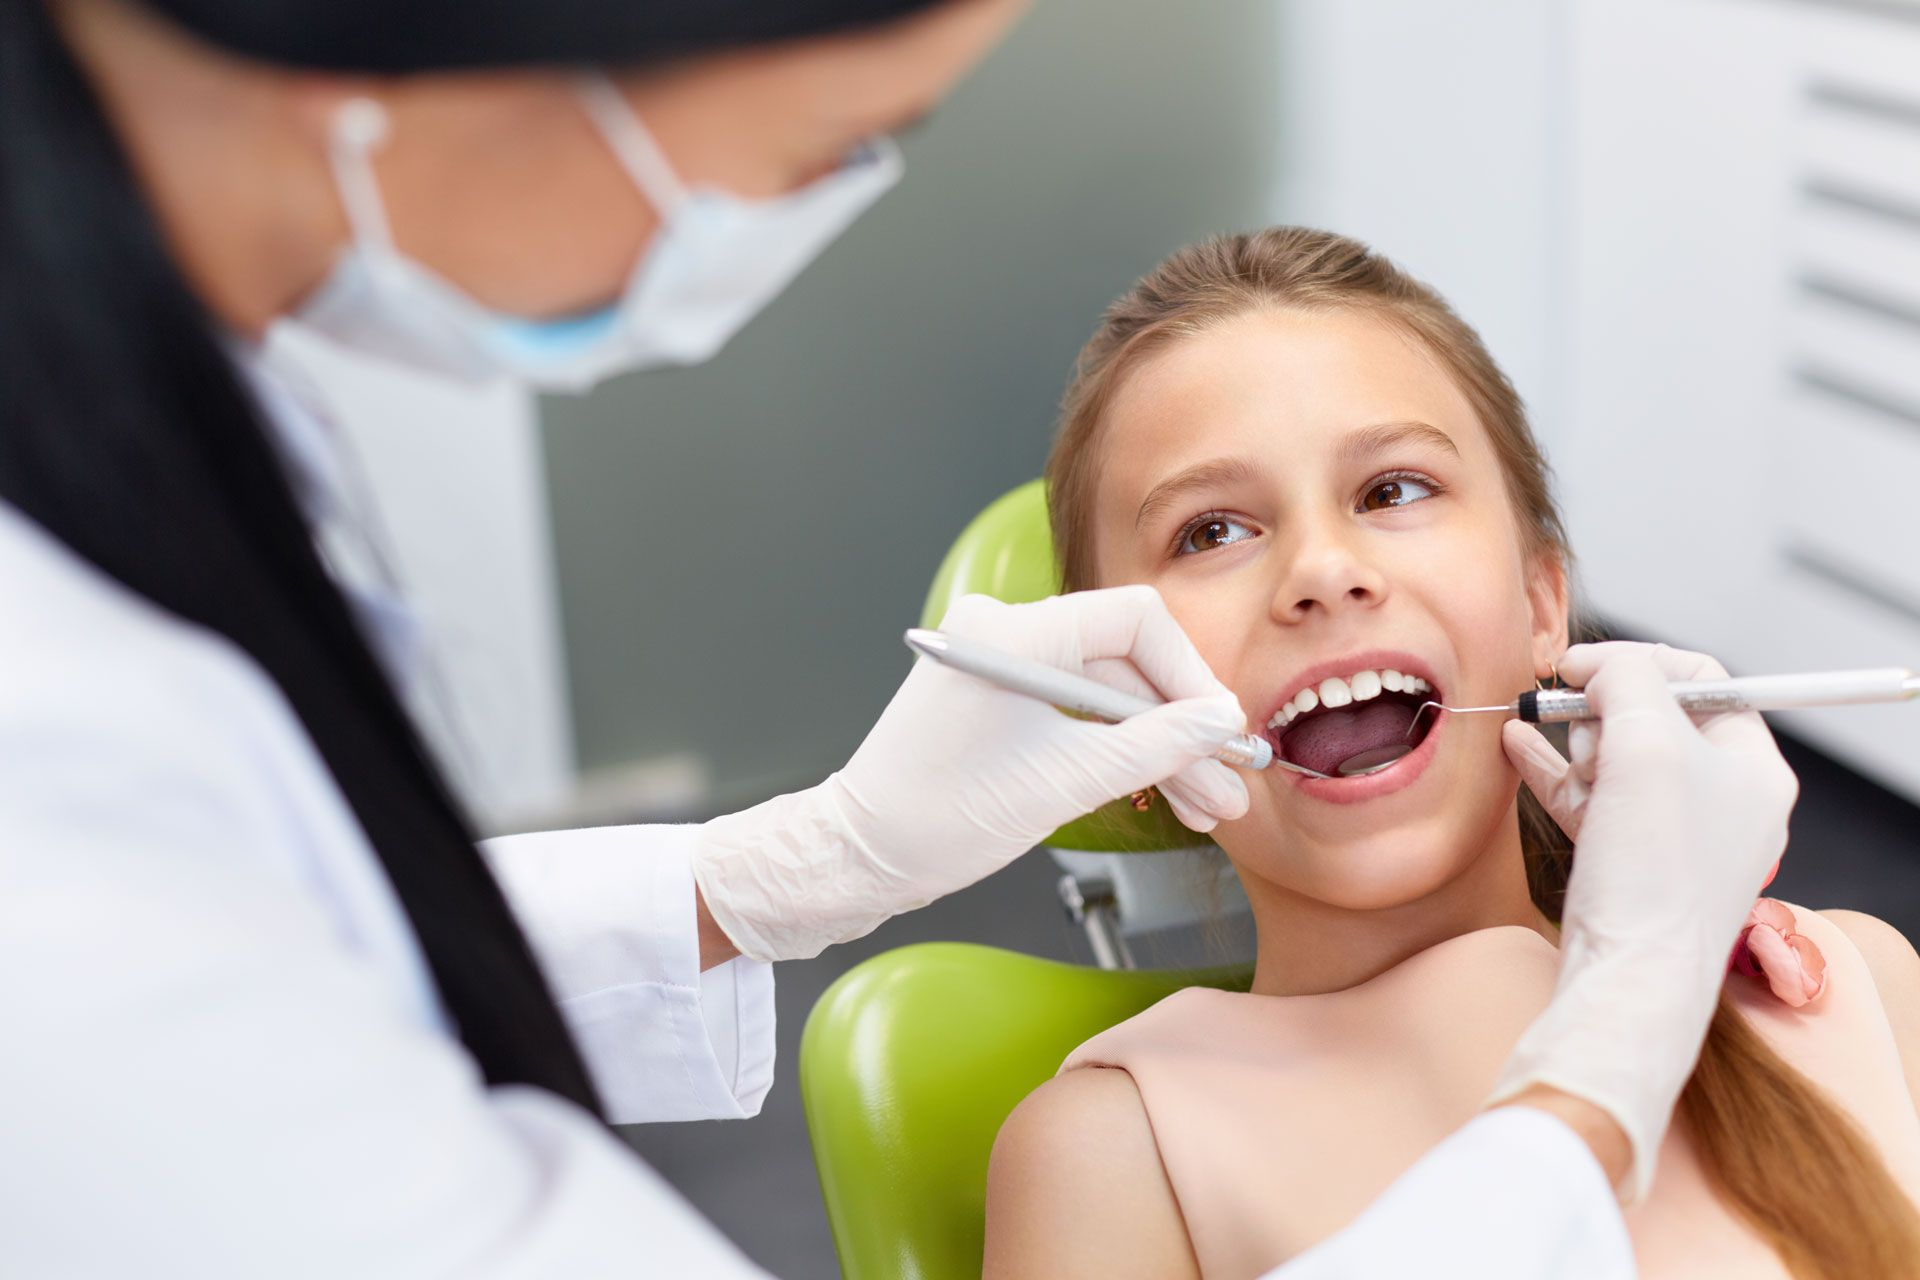 Parents should consult a dental professional to determine